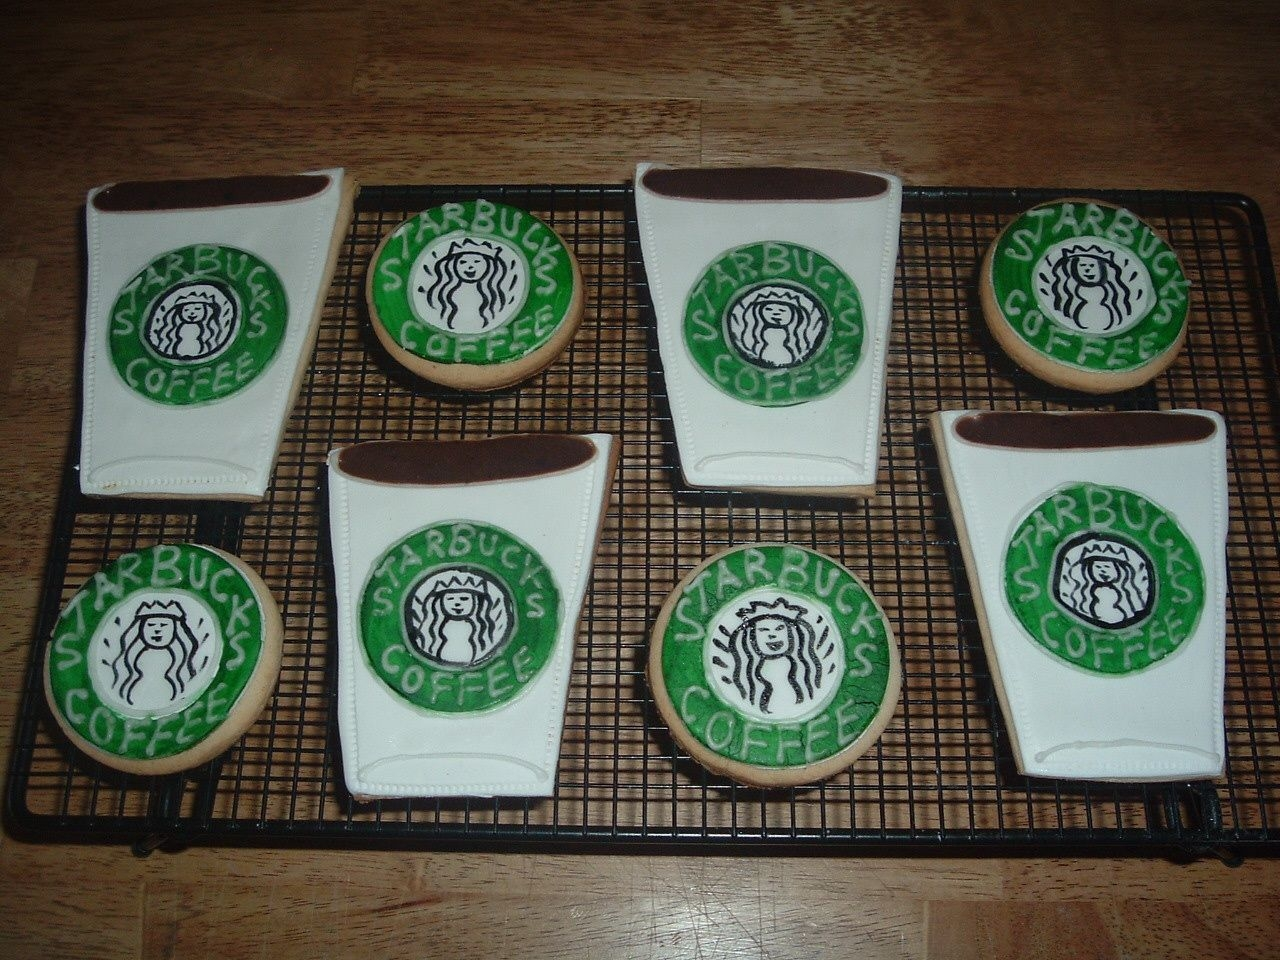 Starbucks Cookies!